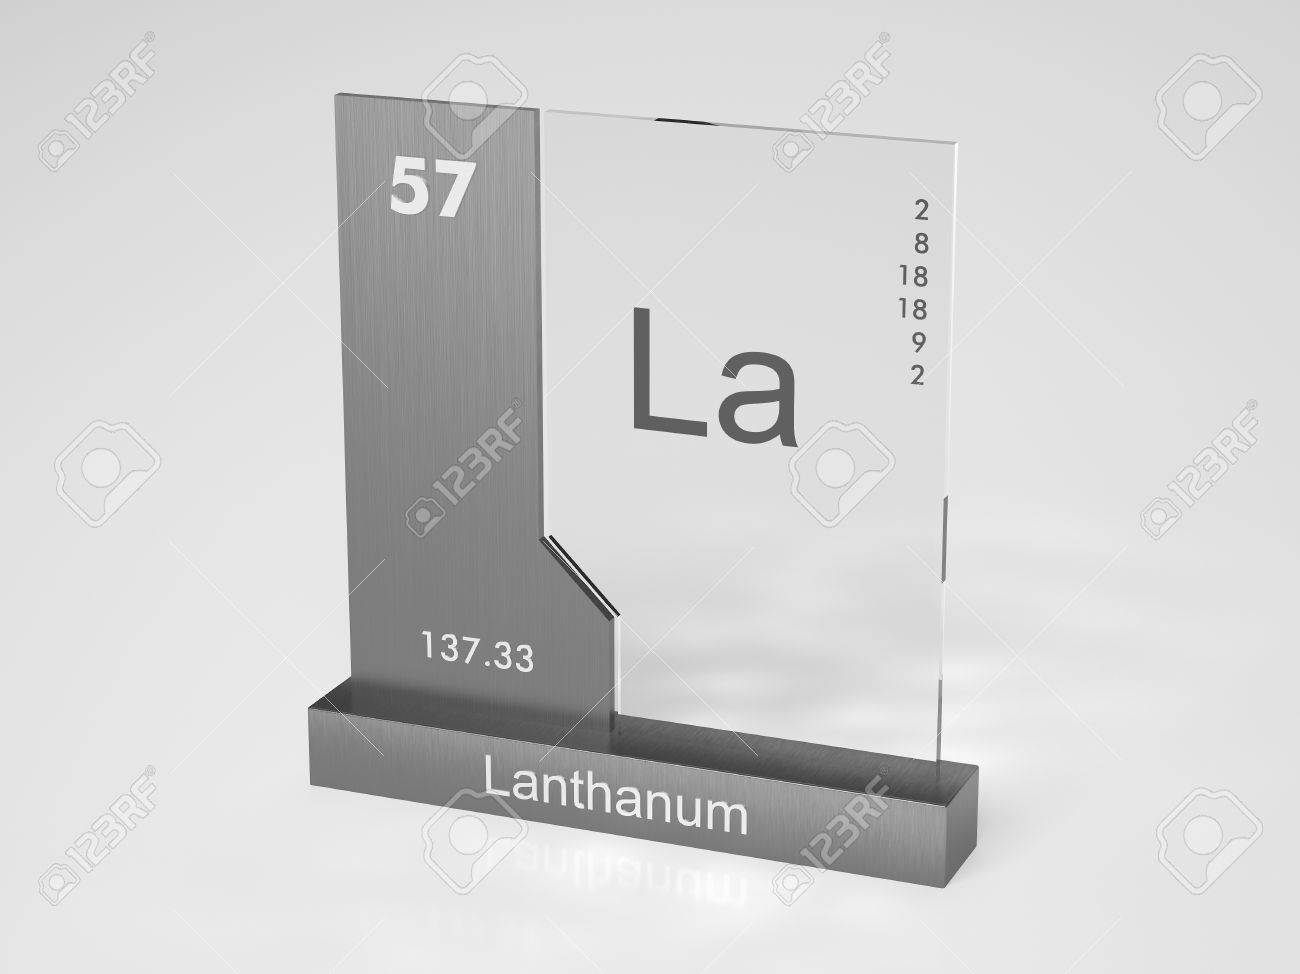 Lanthanum symbol la chemical element of the periodic table lanthanum symbol la chemical element of the periodic table stock photo 10470016 gamestrikefo Image collections